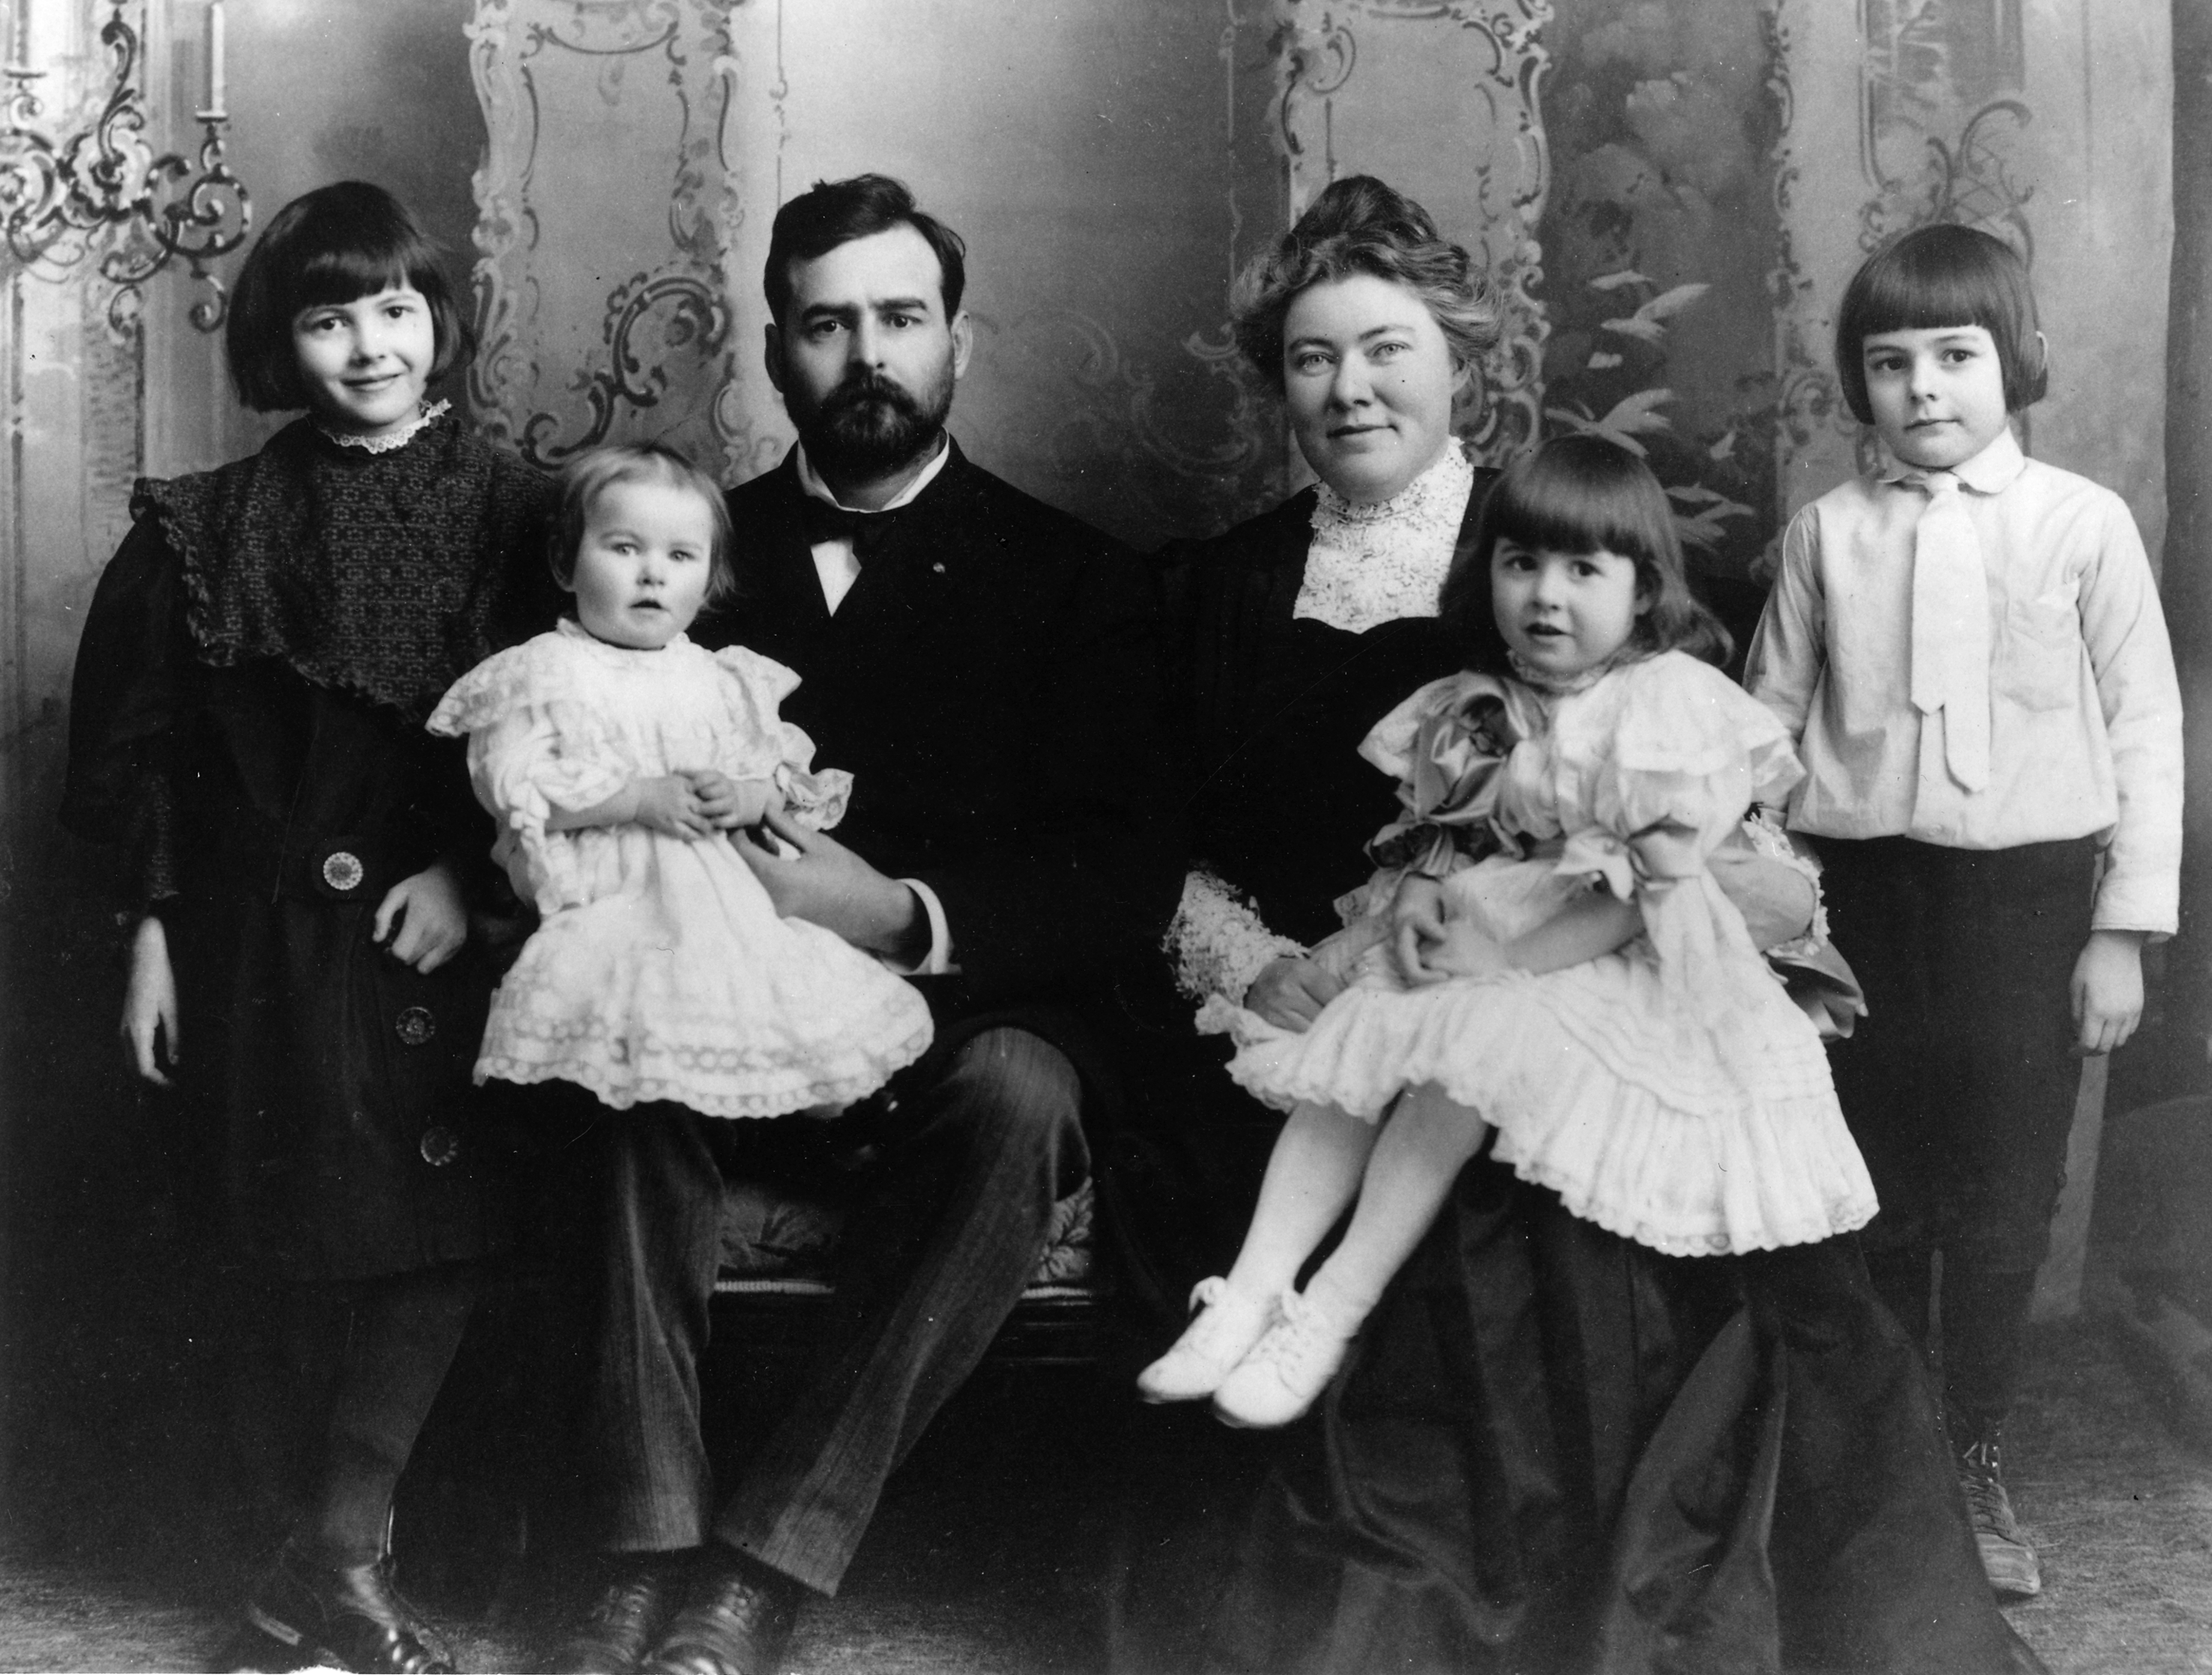 https://www.theparisreview.org/blog/wp-content/uploads/2015/04/ernest_hemingway_with_family_1905.png